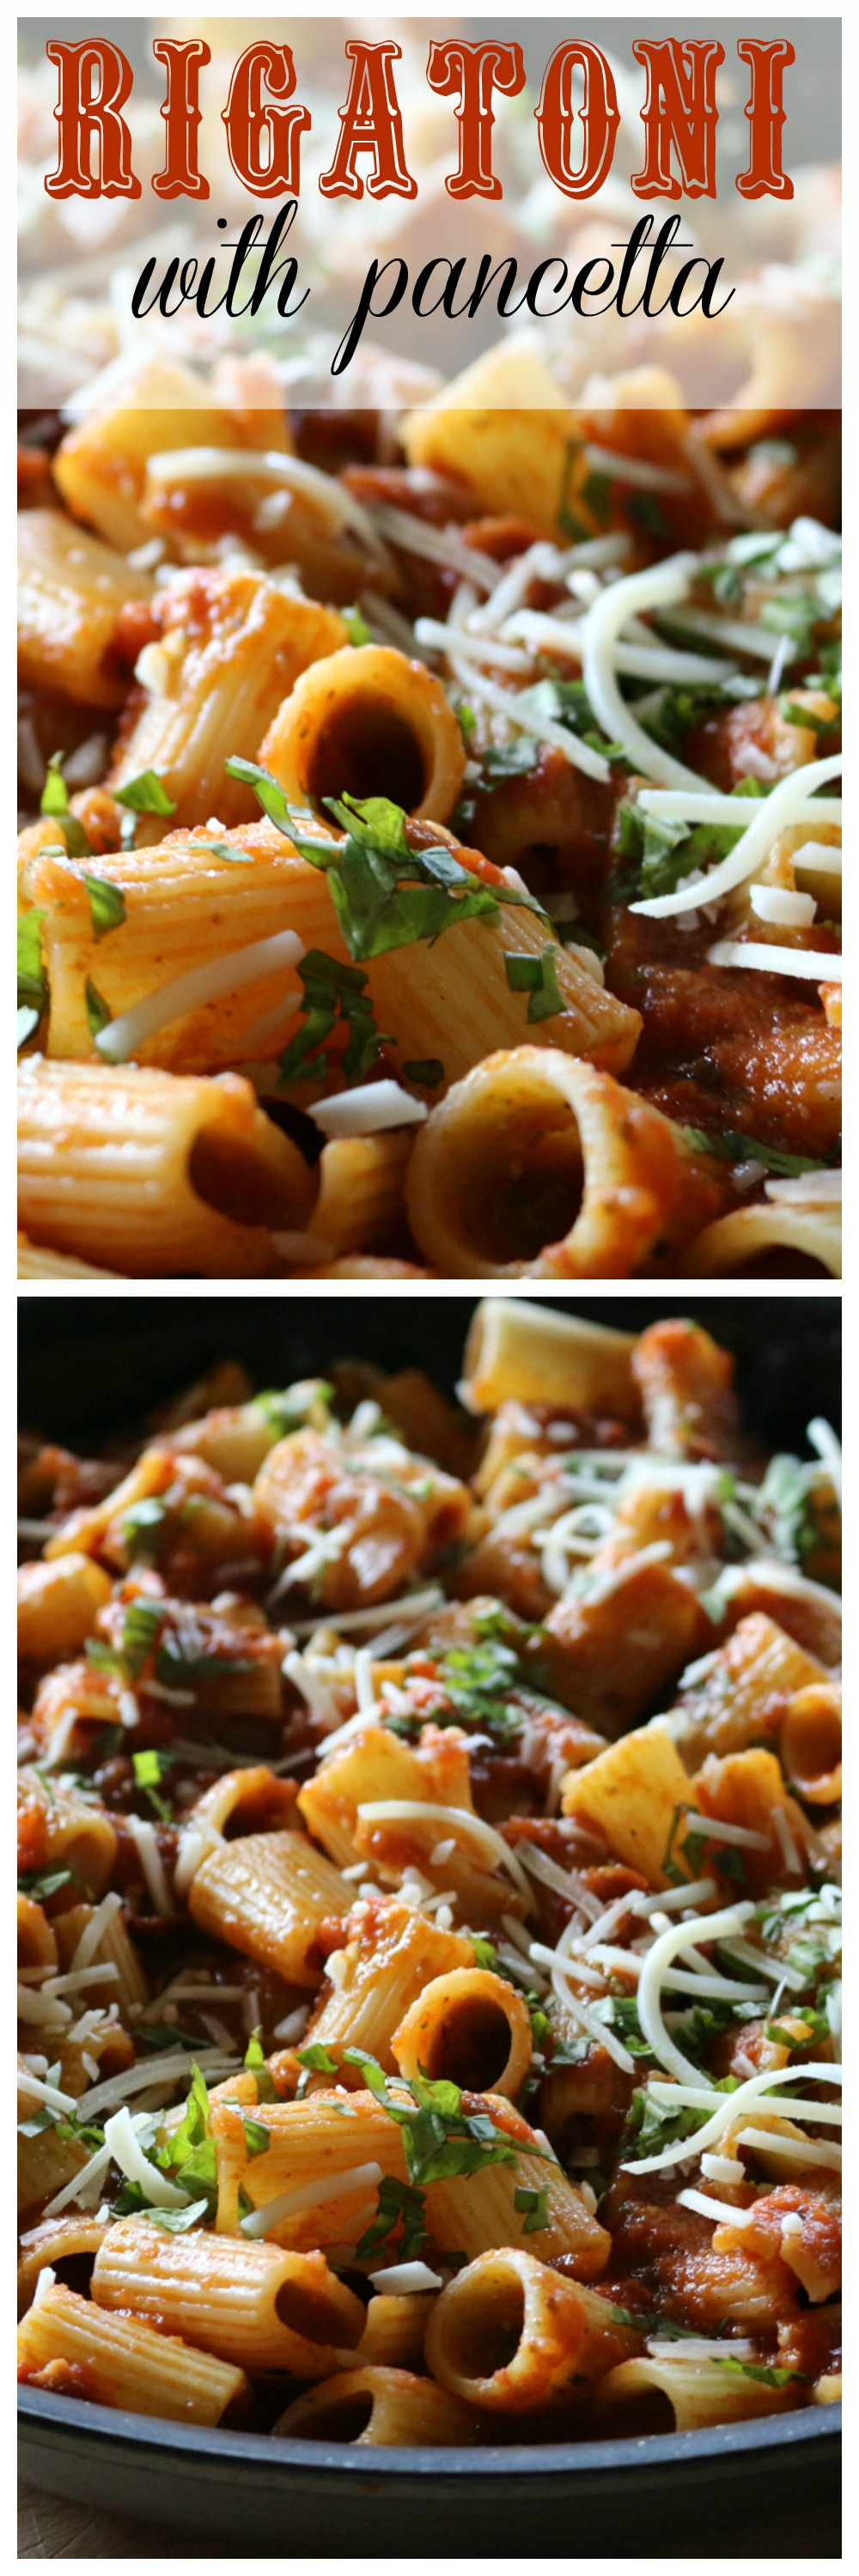 Easy recipe for Italian Rigatoni with pancetta and fresh basil.